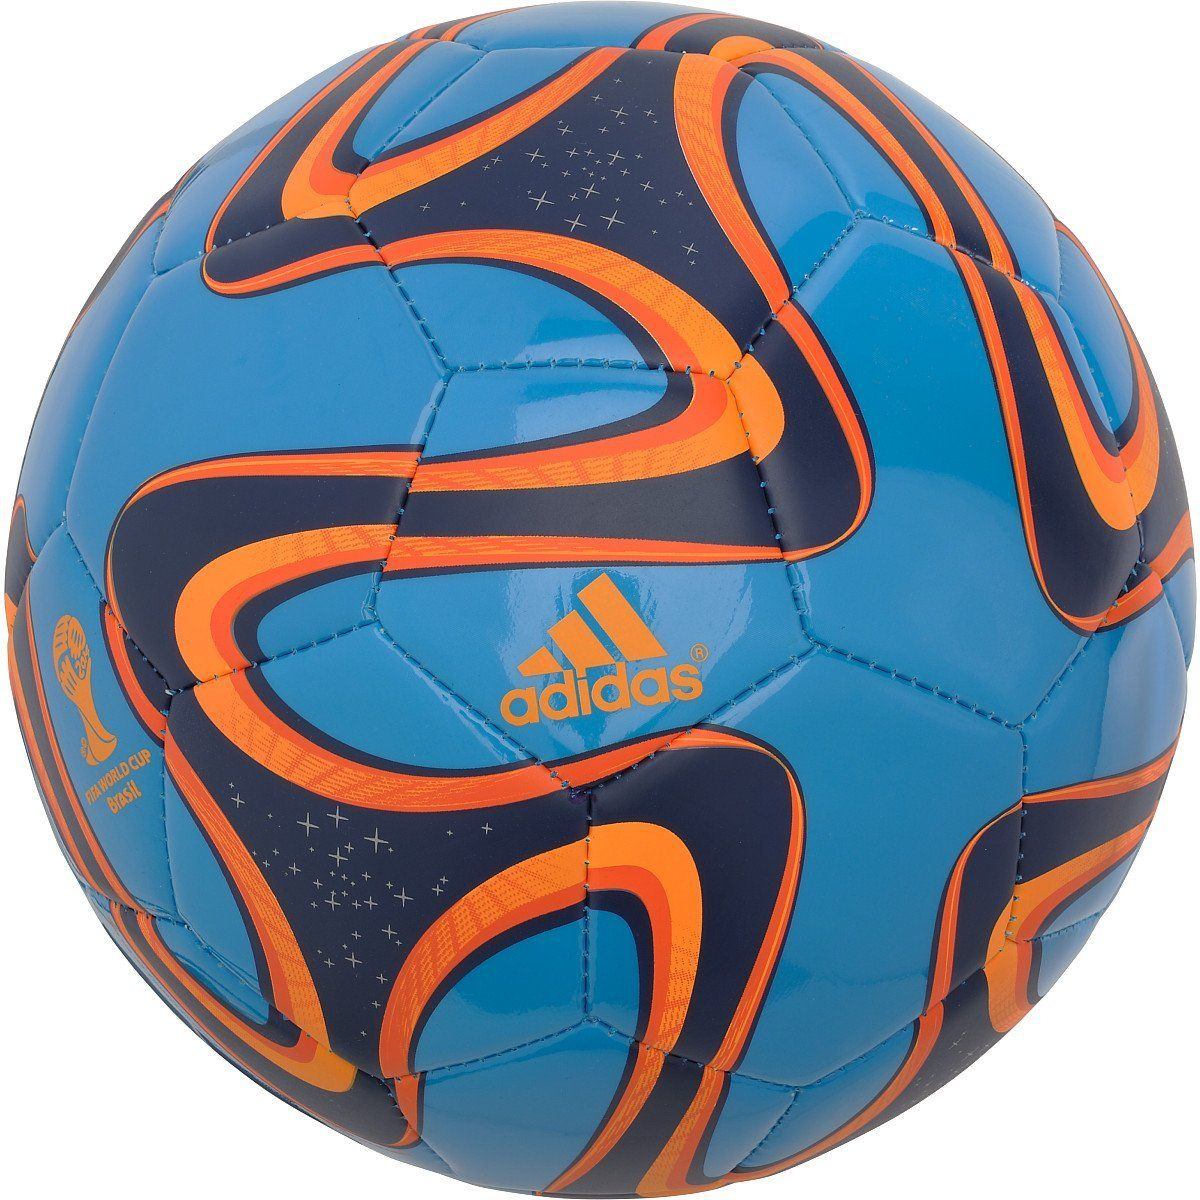 Pin On World Cup 2014 Brazil